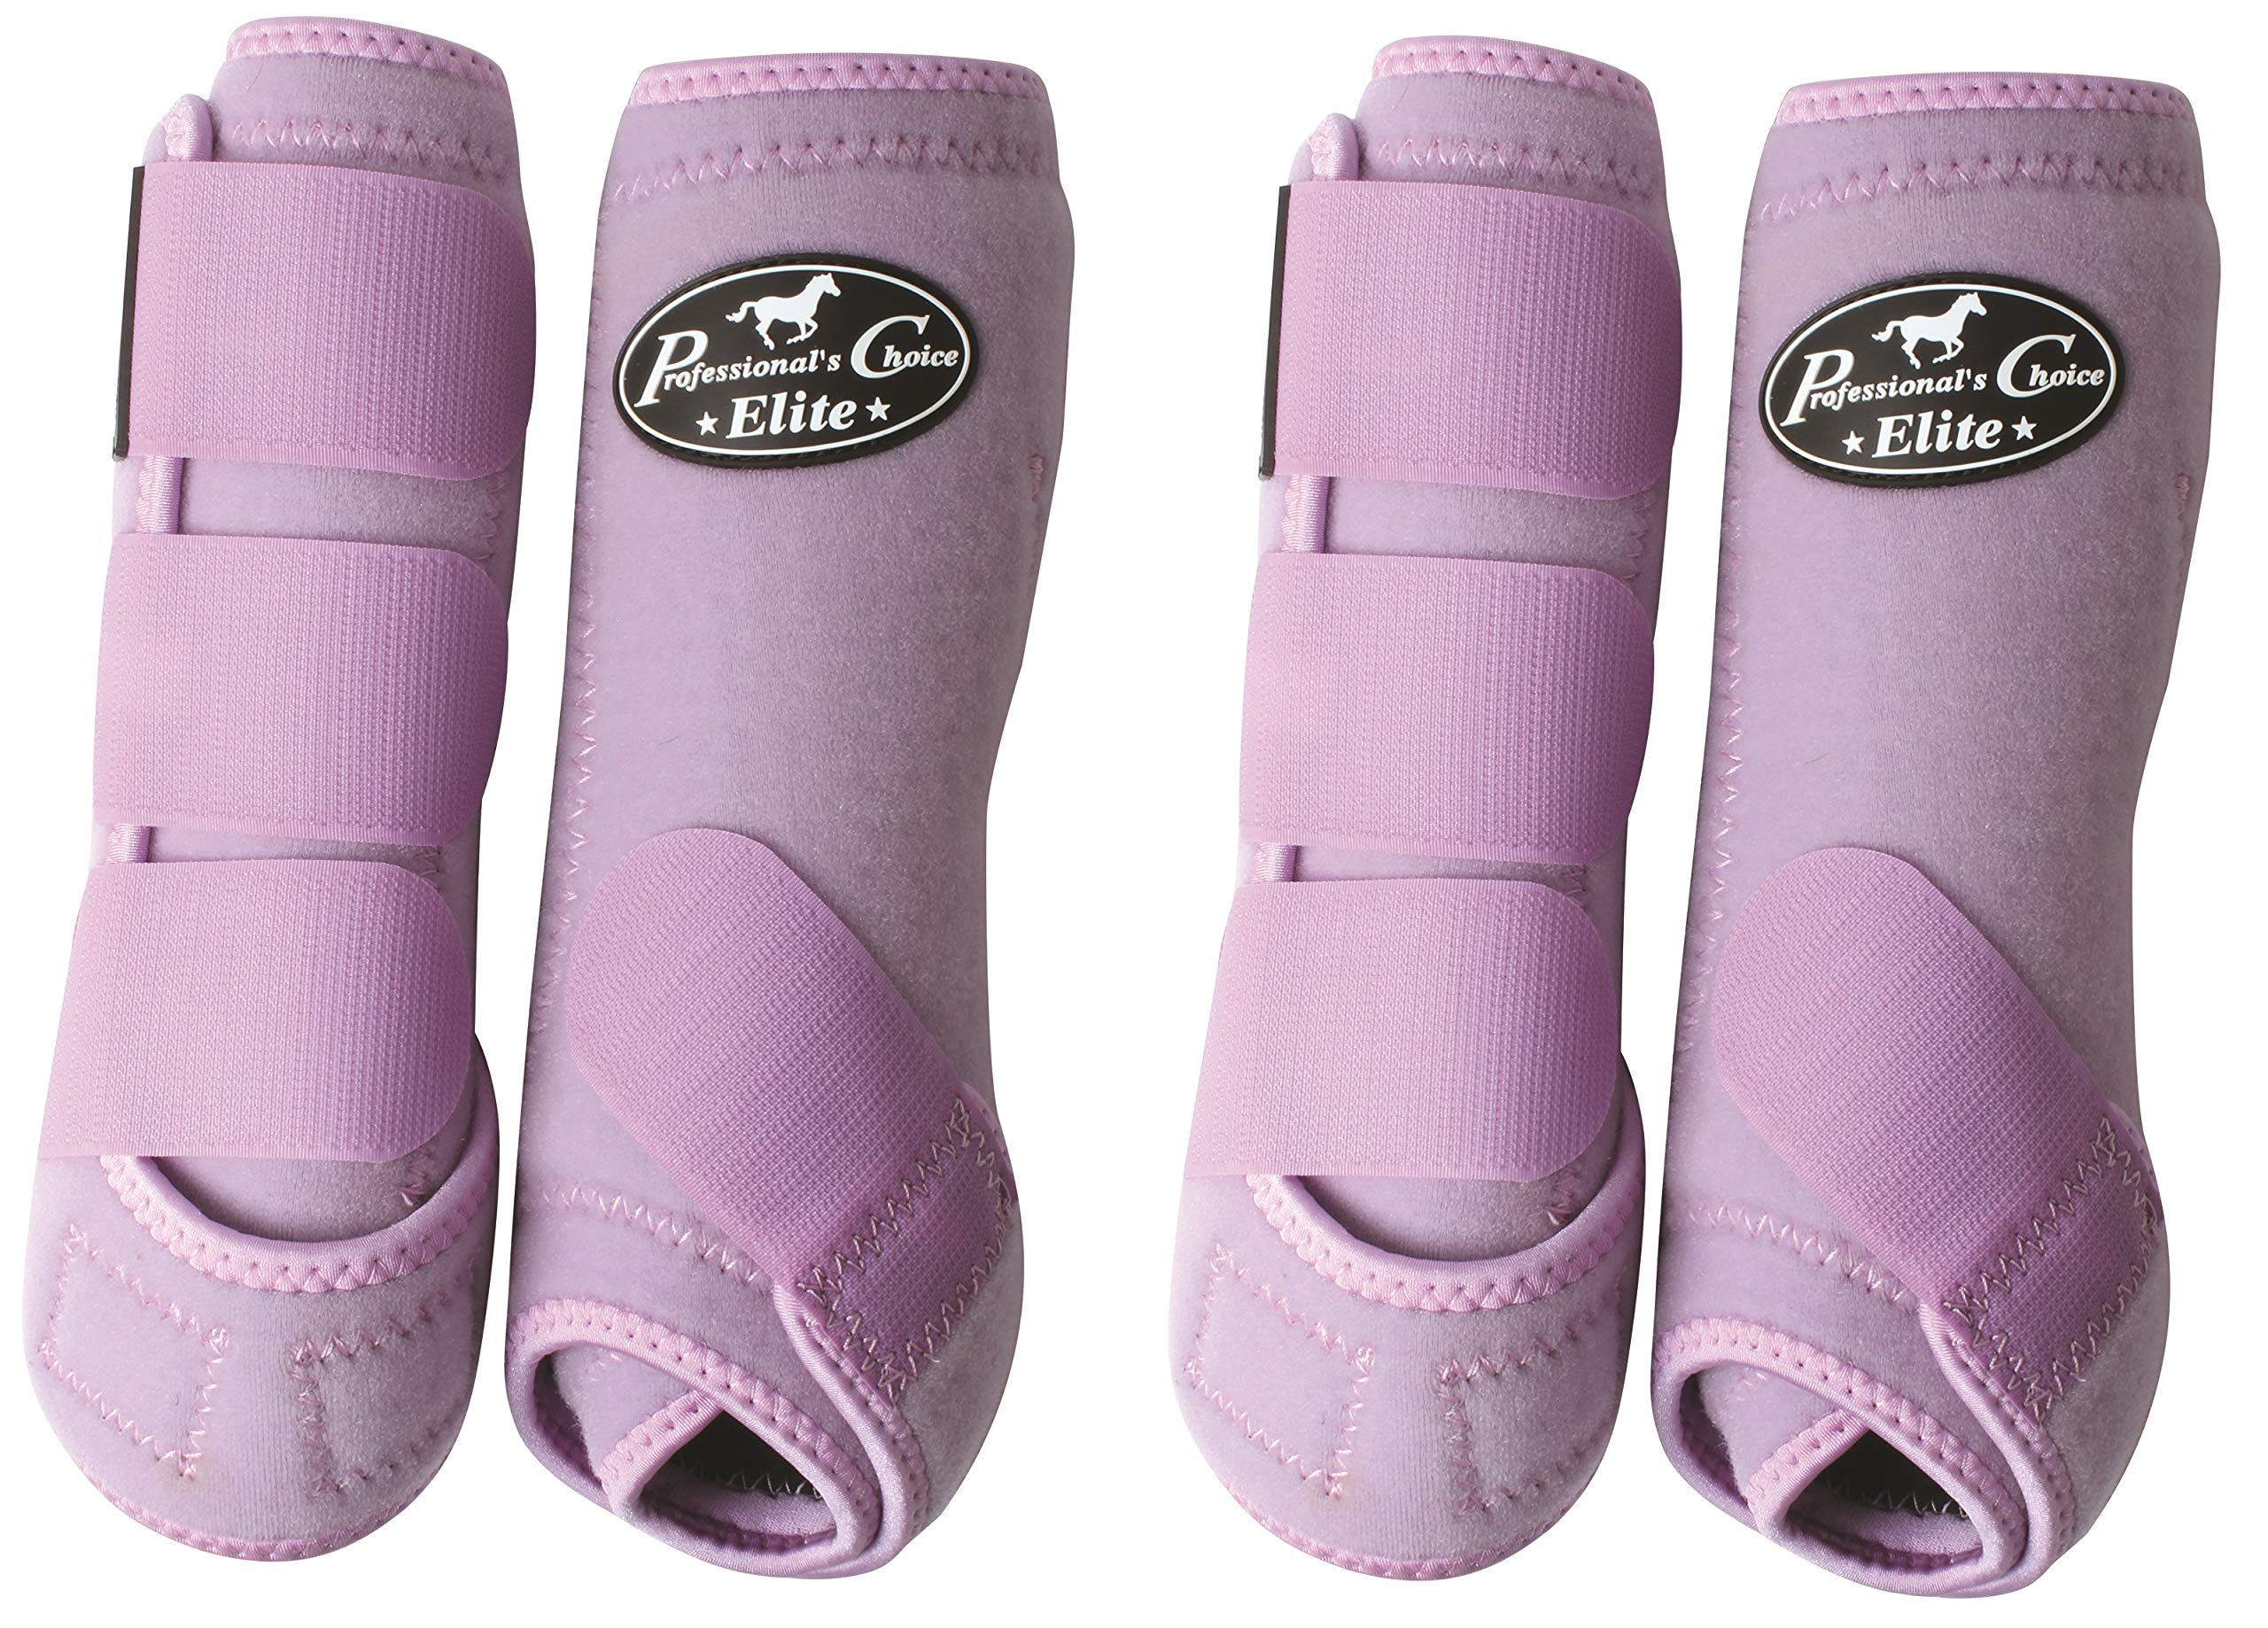 Professional's Choice Ventech Elite Horse Equine SMB Medicine Boots Lilac Purple (Small) by Professional's Choice